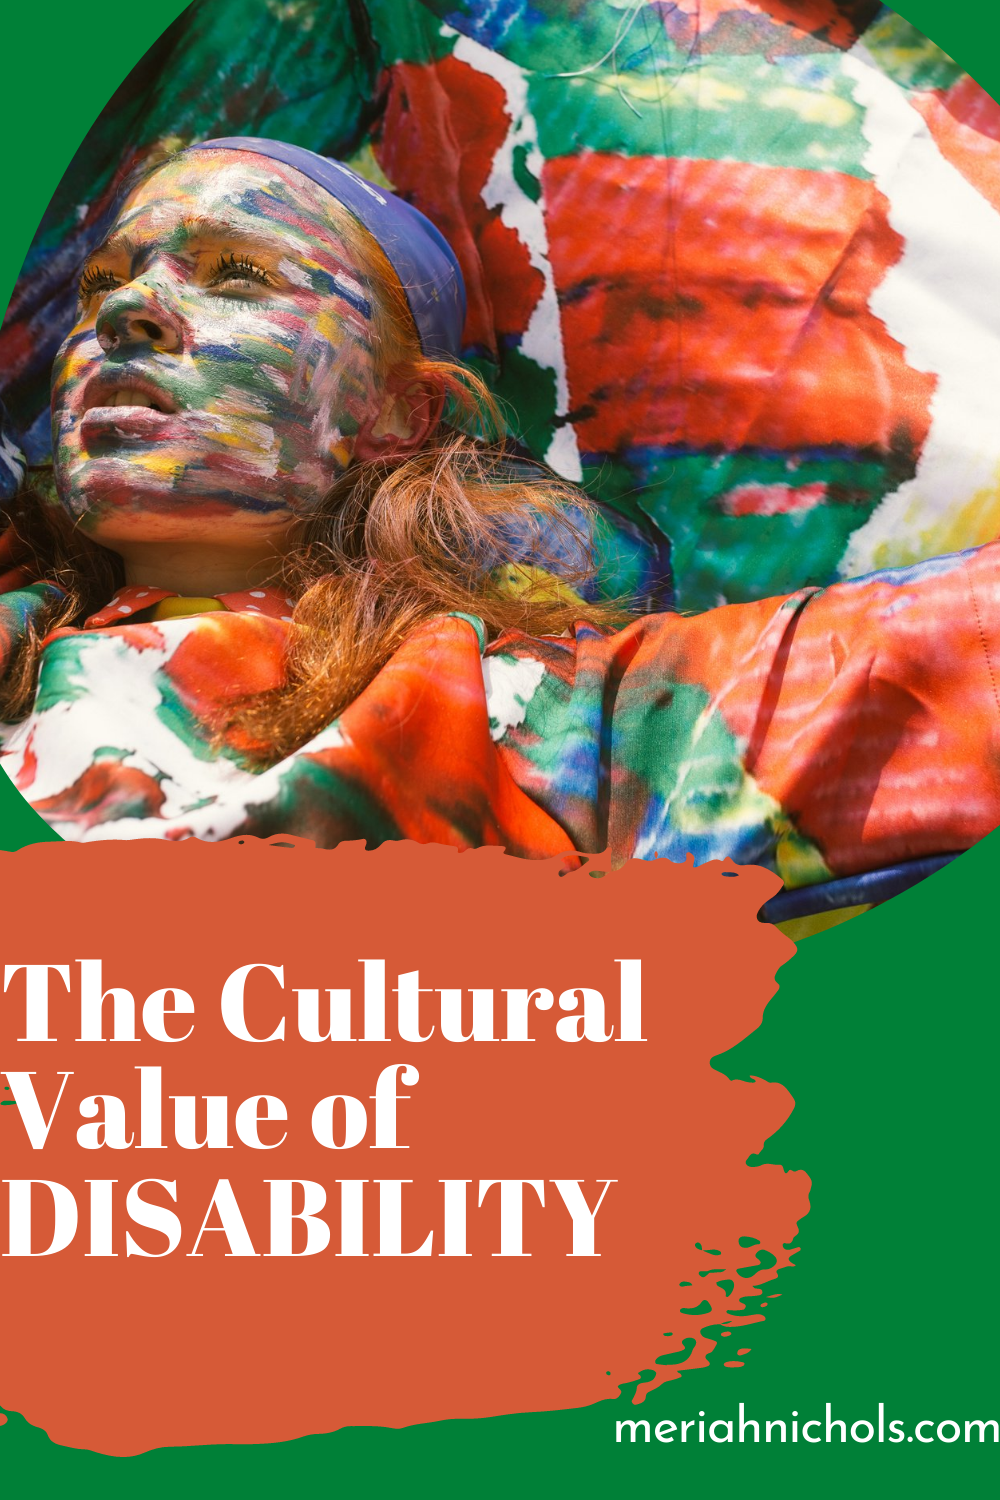 ID: cultural value of disability: a face with paint parks all over it looks up in an expression of fierce thought, arms seem outstretched with green, red and multicolored cloth on. background is green and rust red